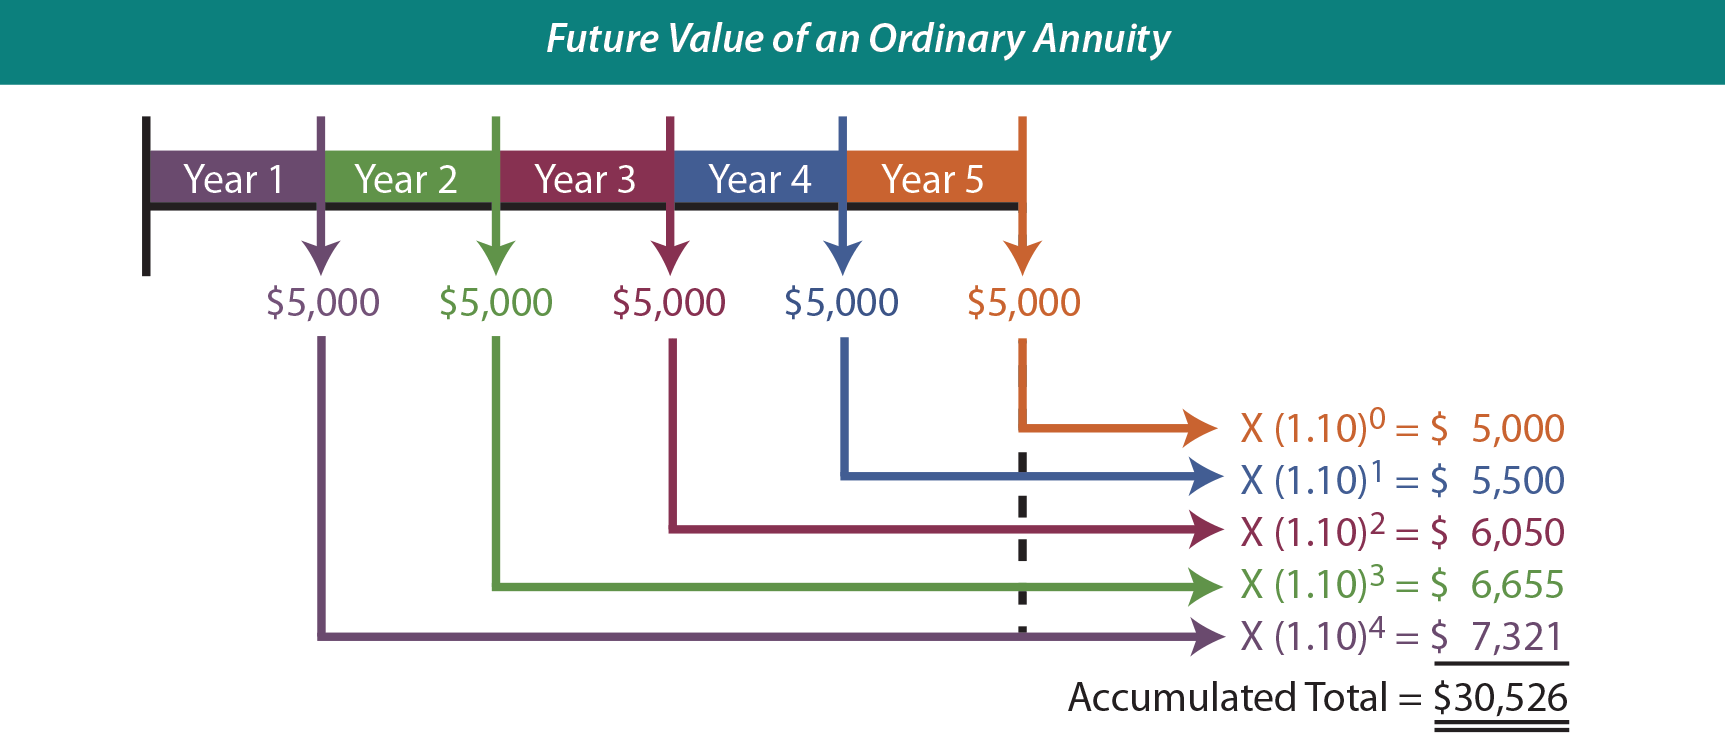 Future Value of an Ordinary Annuity Illustration